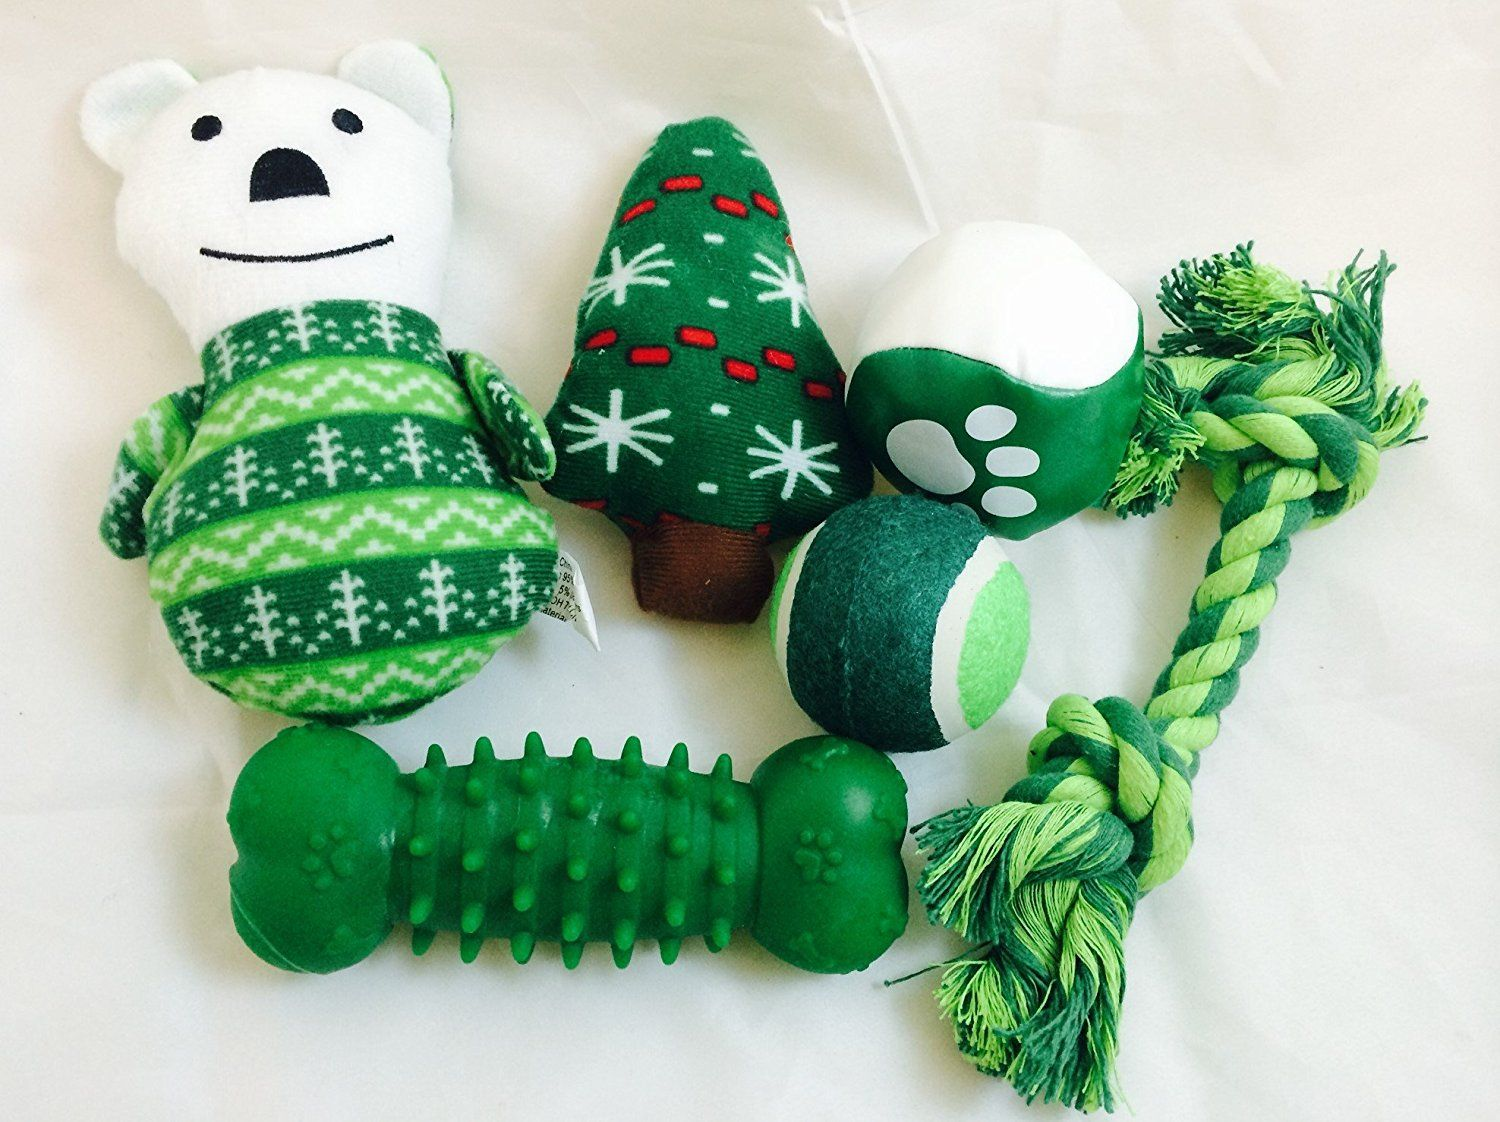 Chritsmas 6 piece toy stocking green check out the